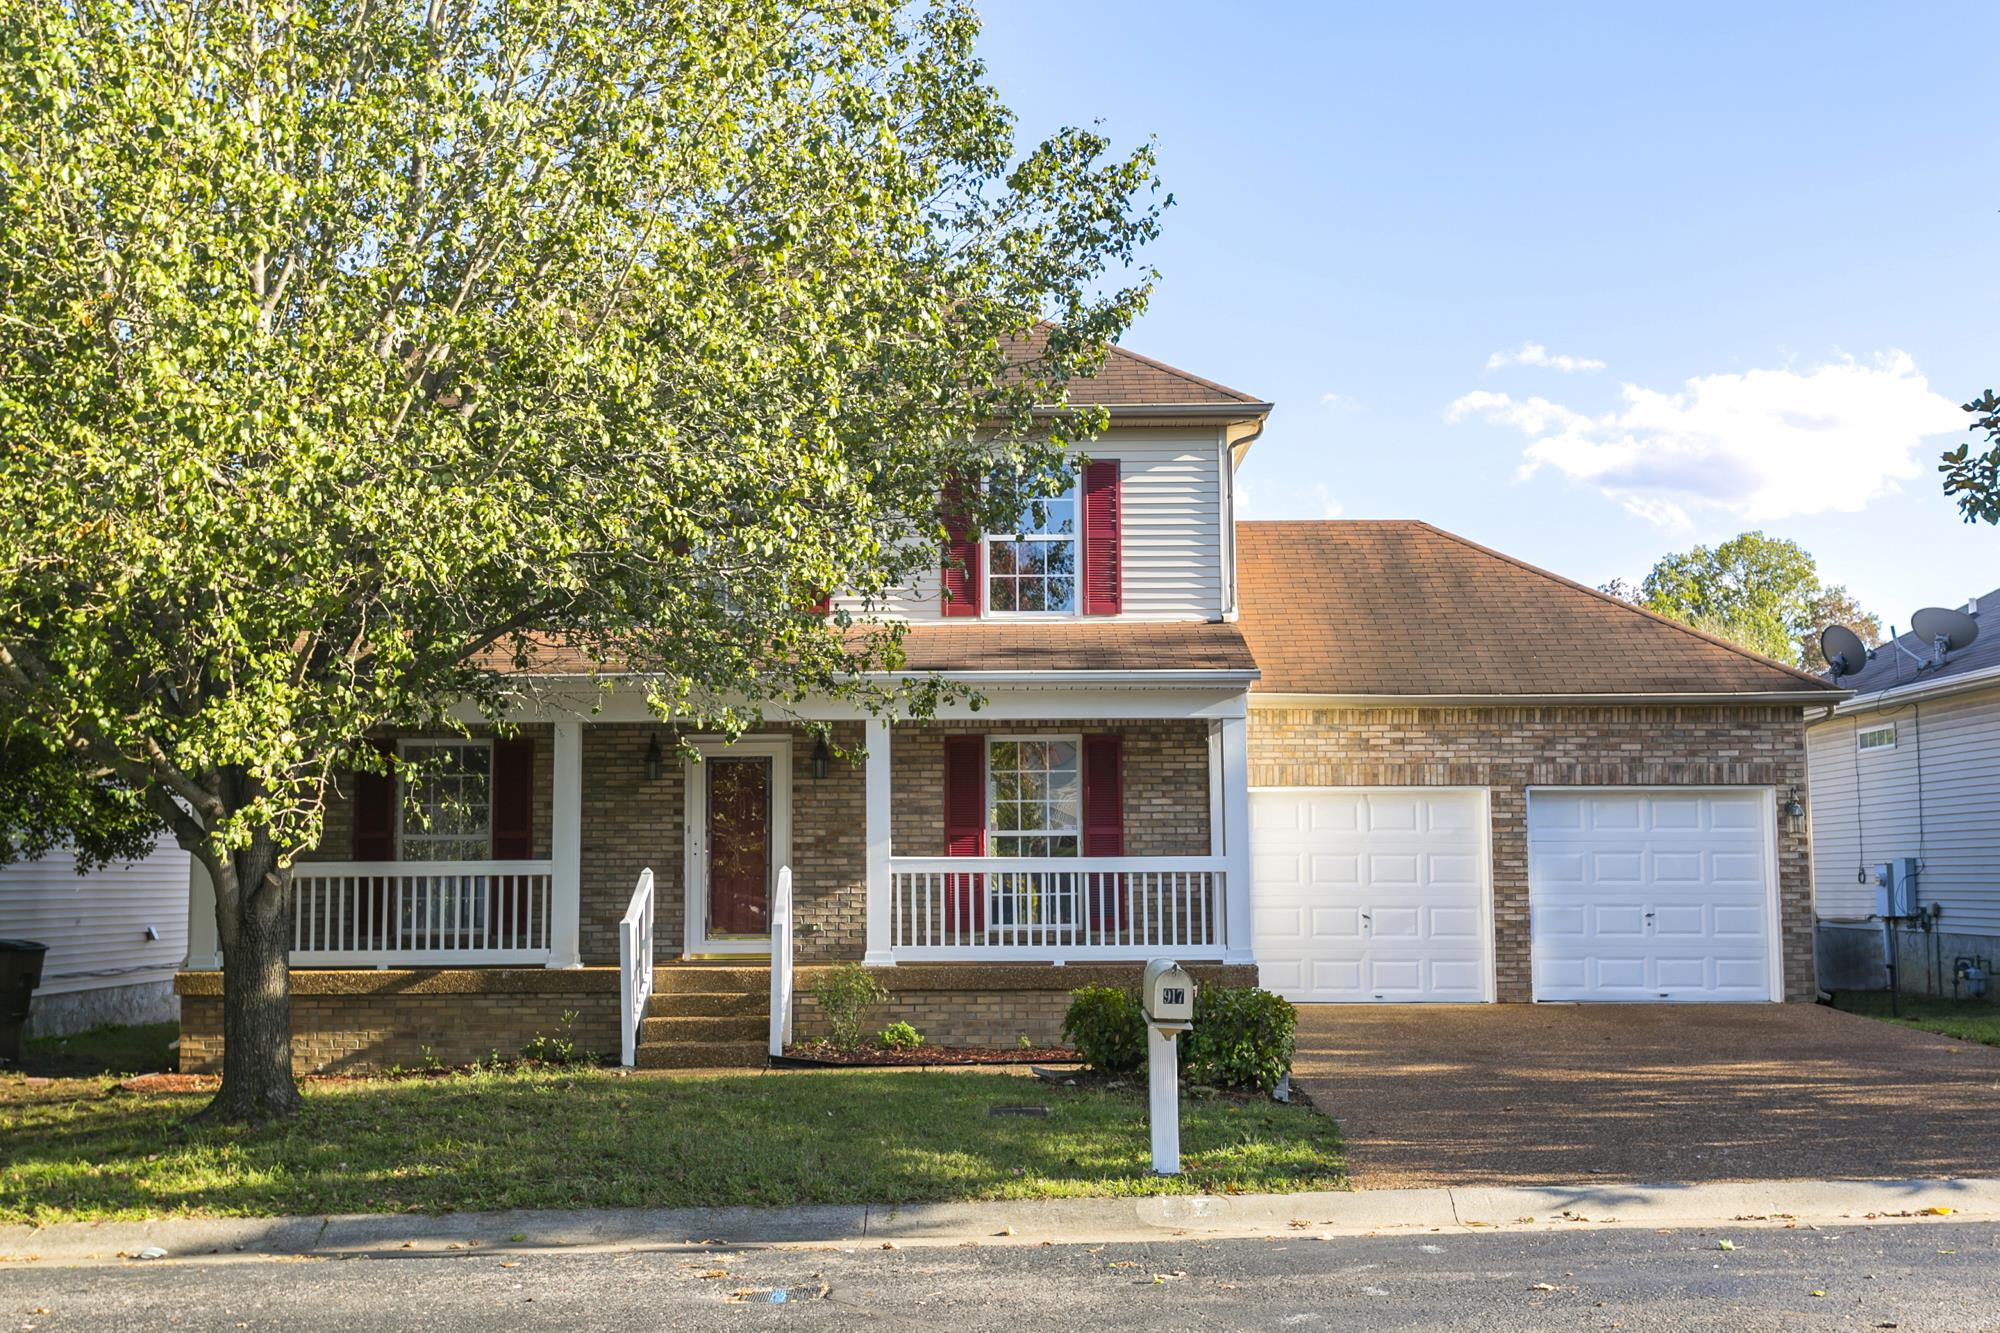 917 Forest Pointe Ln, Nashville-Antioch in Davidson County County, TN 37013 Home for Sale